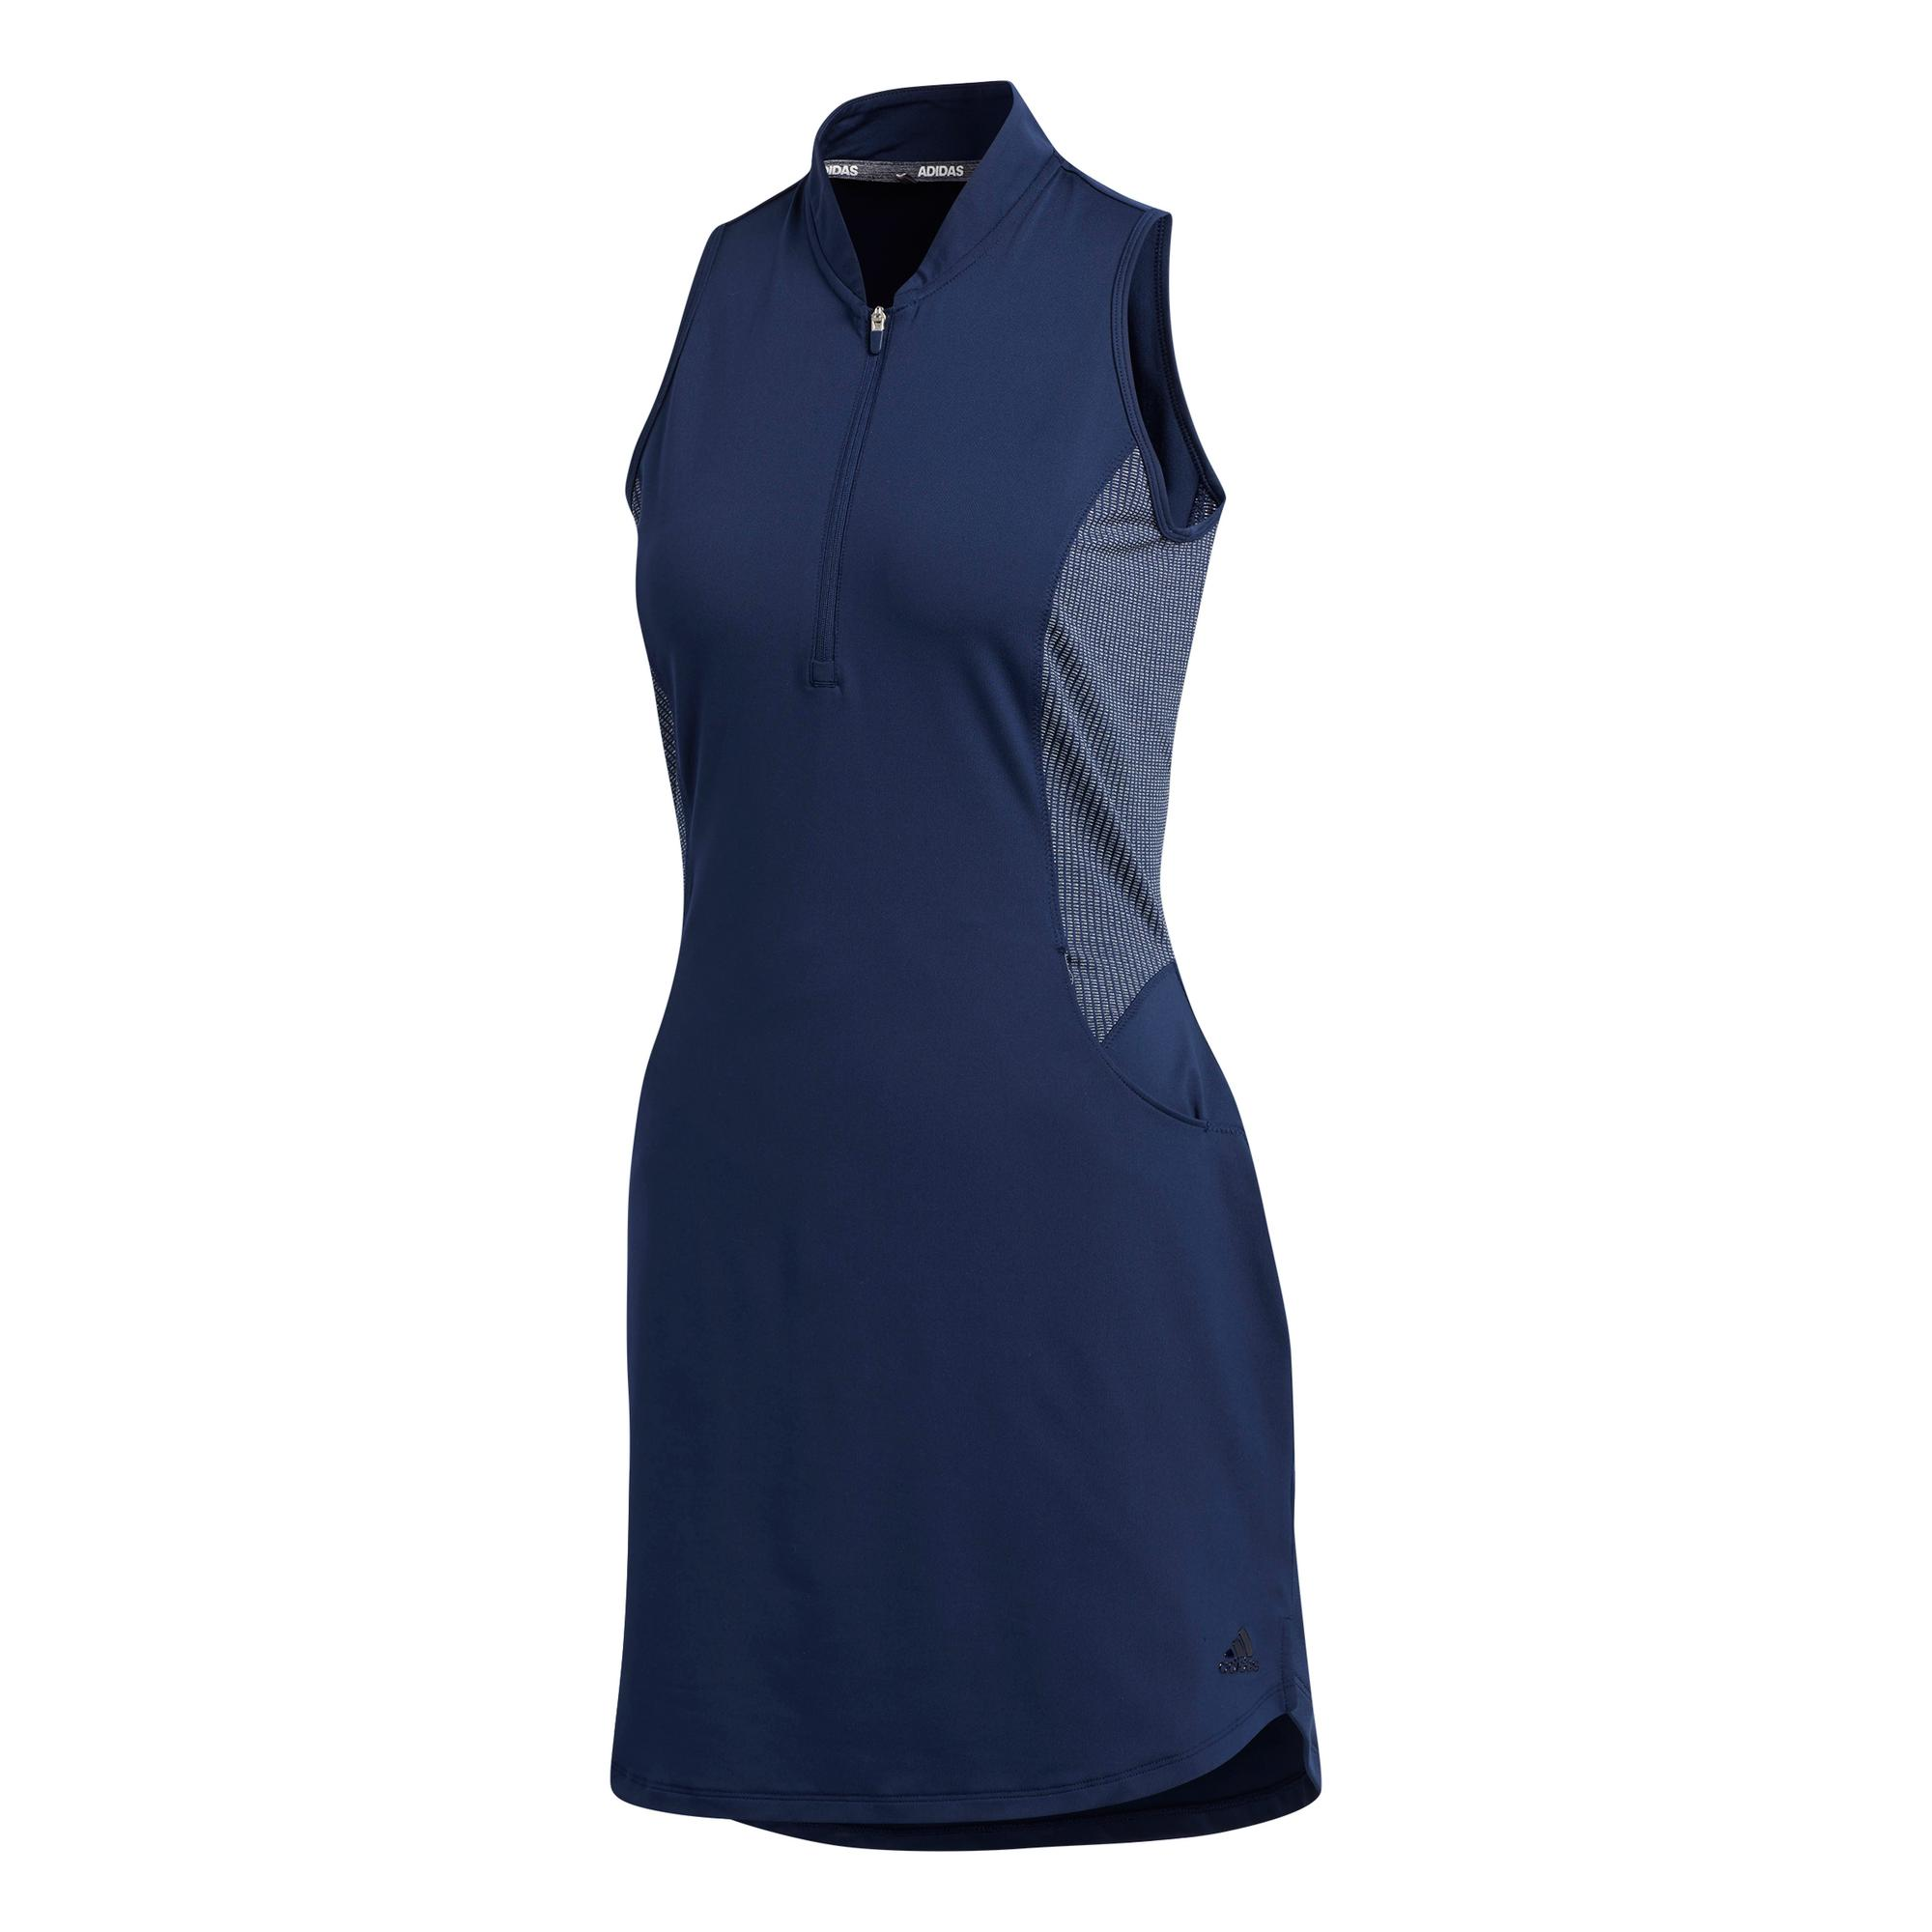 Women's Rangewear Sleeveless Dress